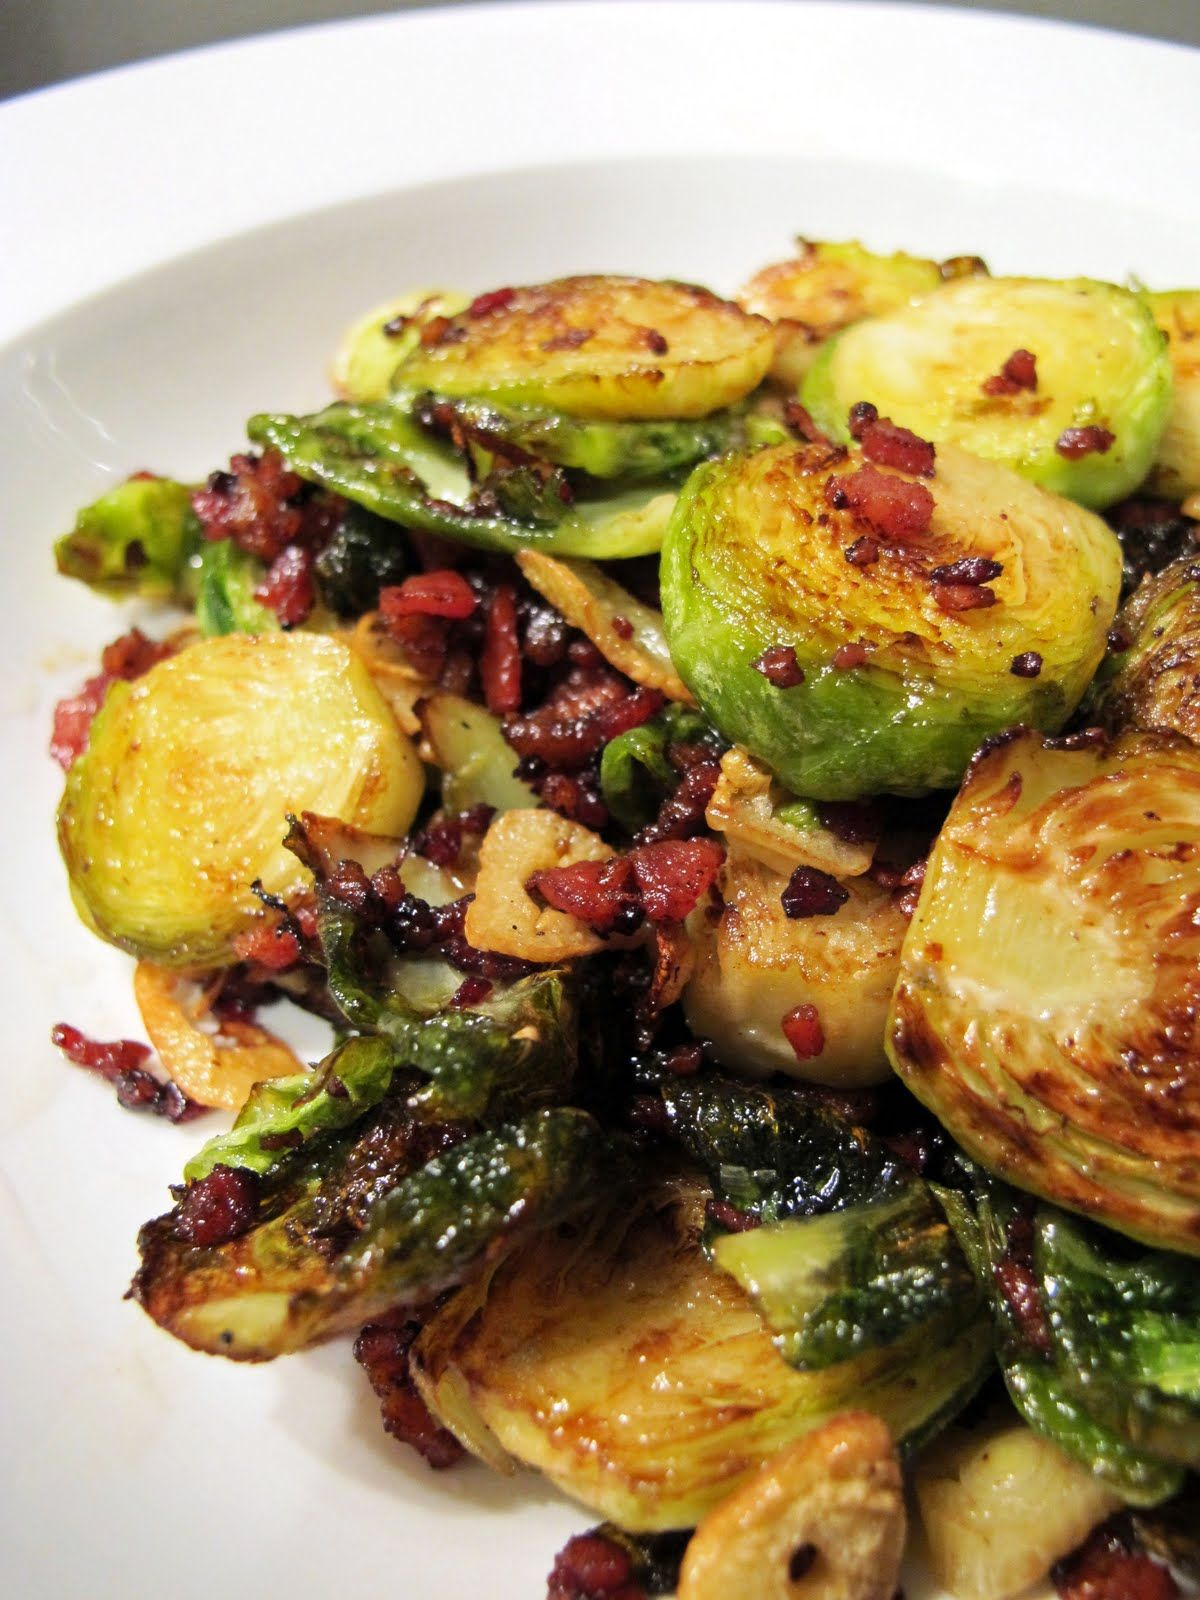 crispy brussels sprouts w bacon & garlic..um yes please.